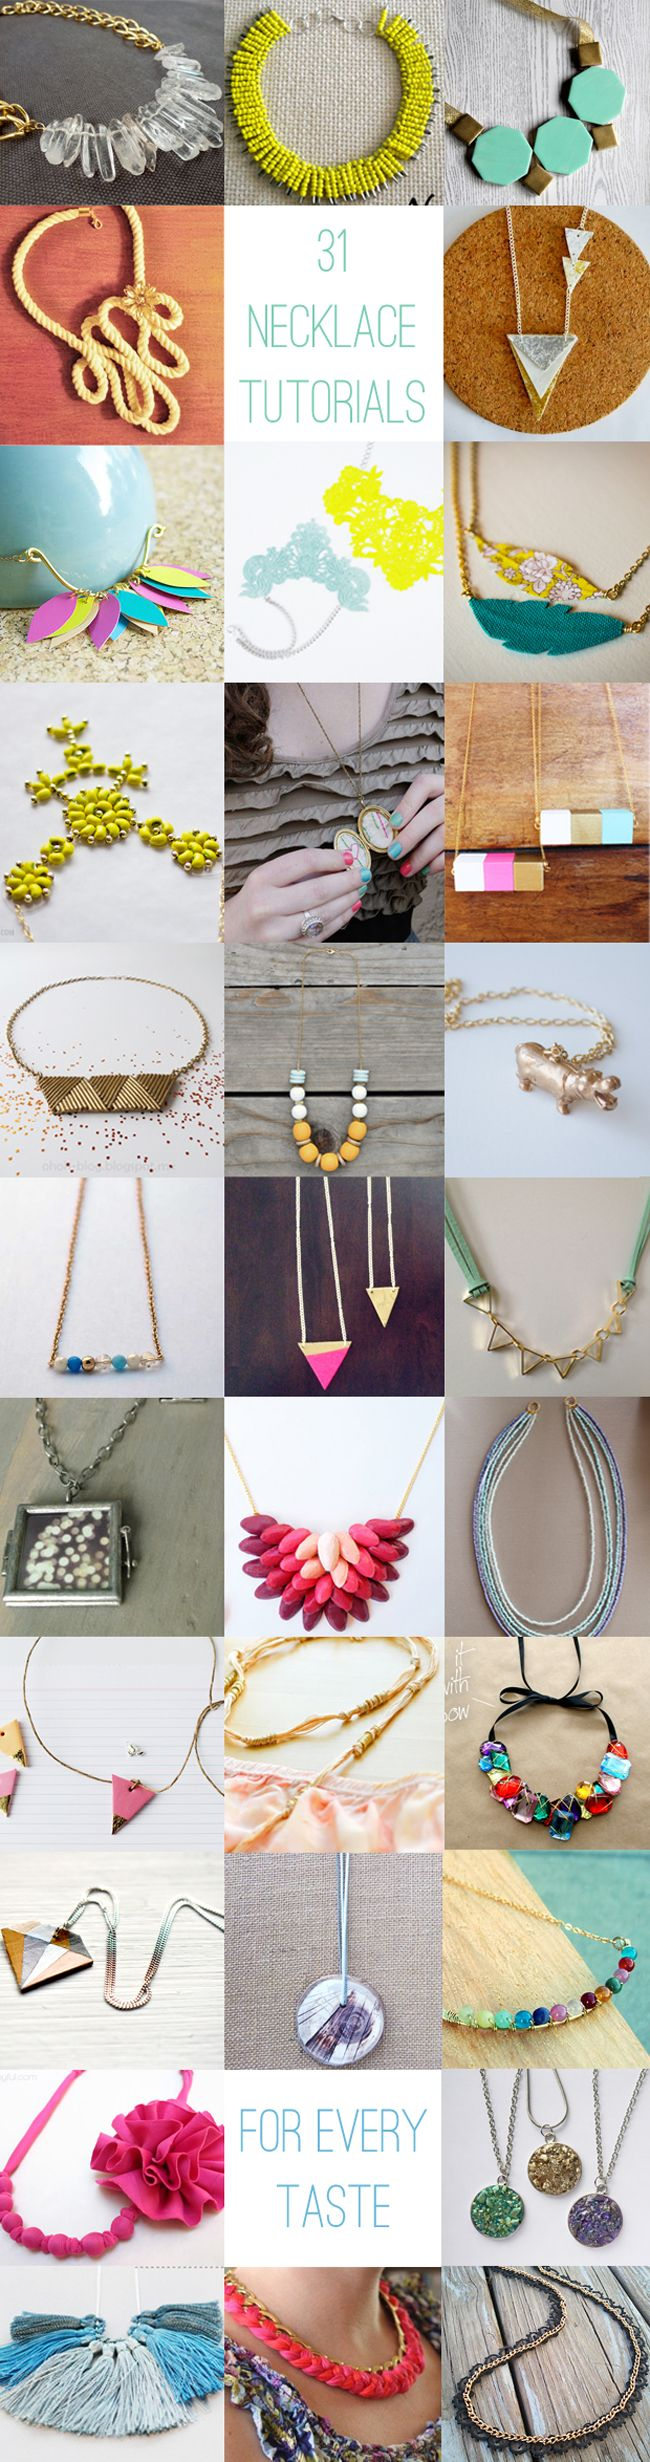 31 DIY Necklace Tutorials - Henry Happened